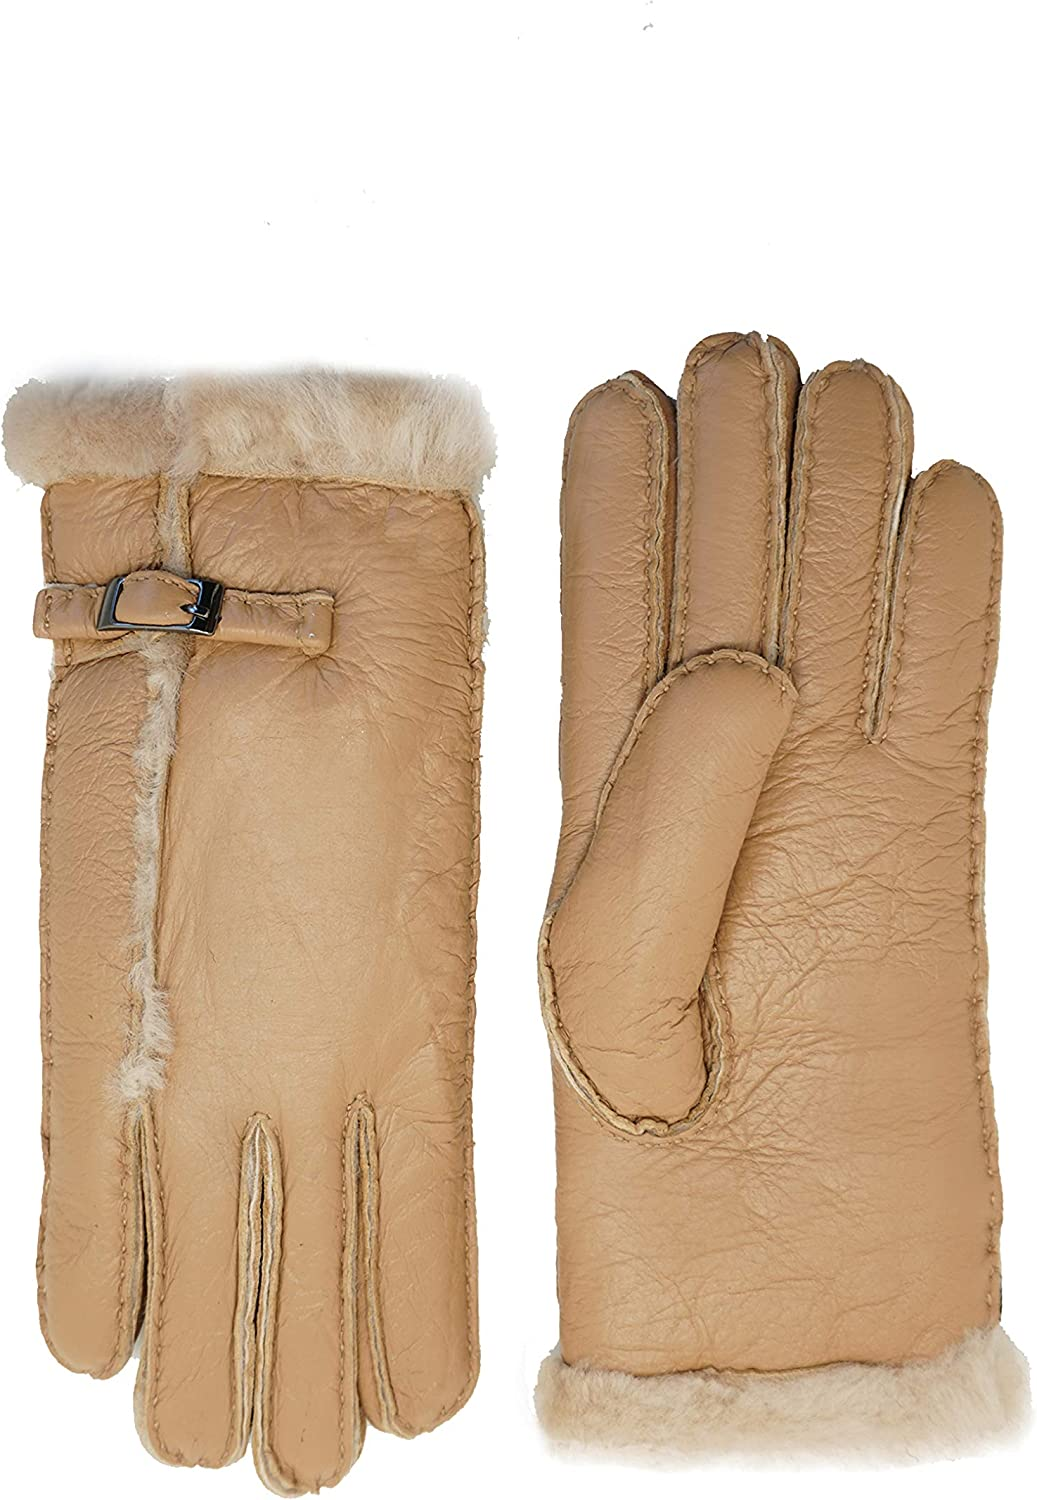 YISEVEN Womens Winter Sheepskin Shearling Leather Gloves Wool Lined Furry Cuffs Heated Sherpa Merino Thick Mittens Soft Warm Fur Lining for Cold Weather Driving Work Gifts, Camel XL